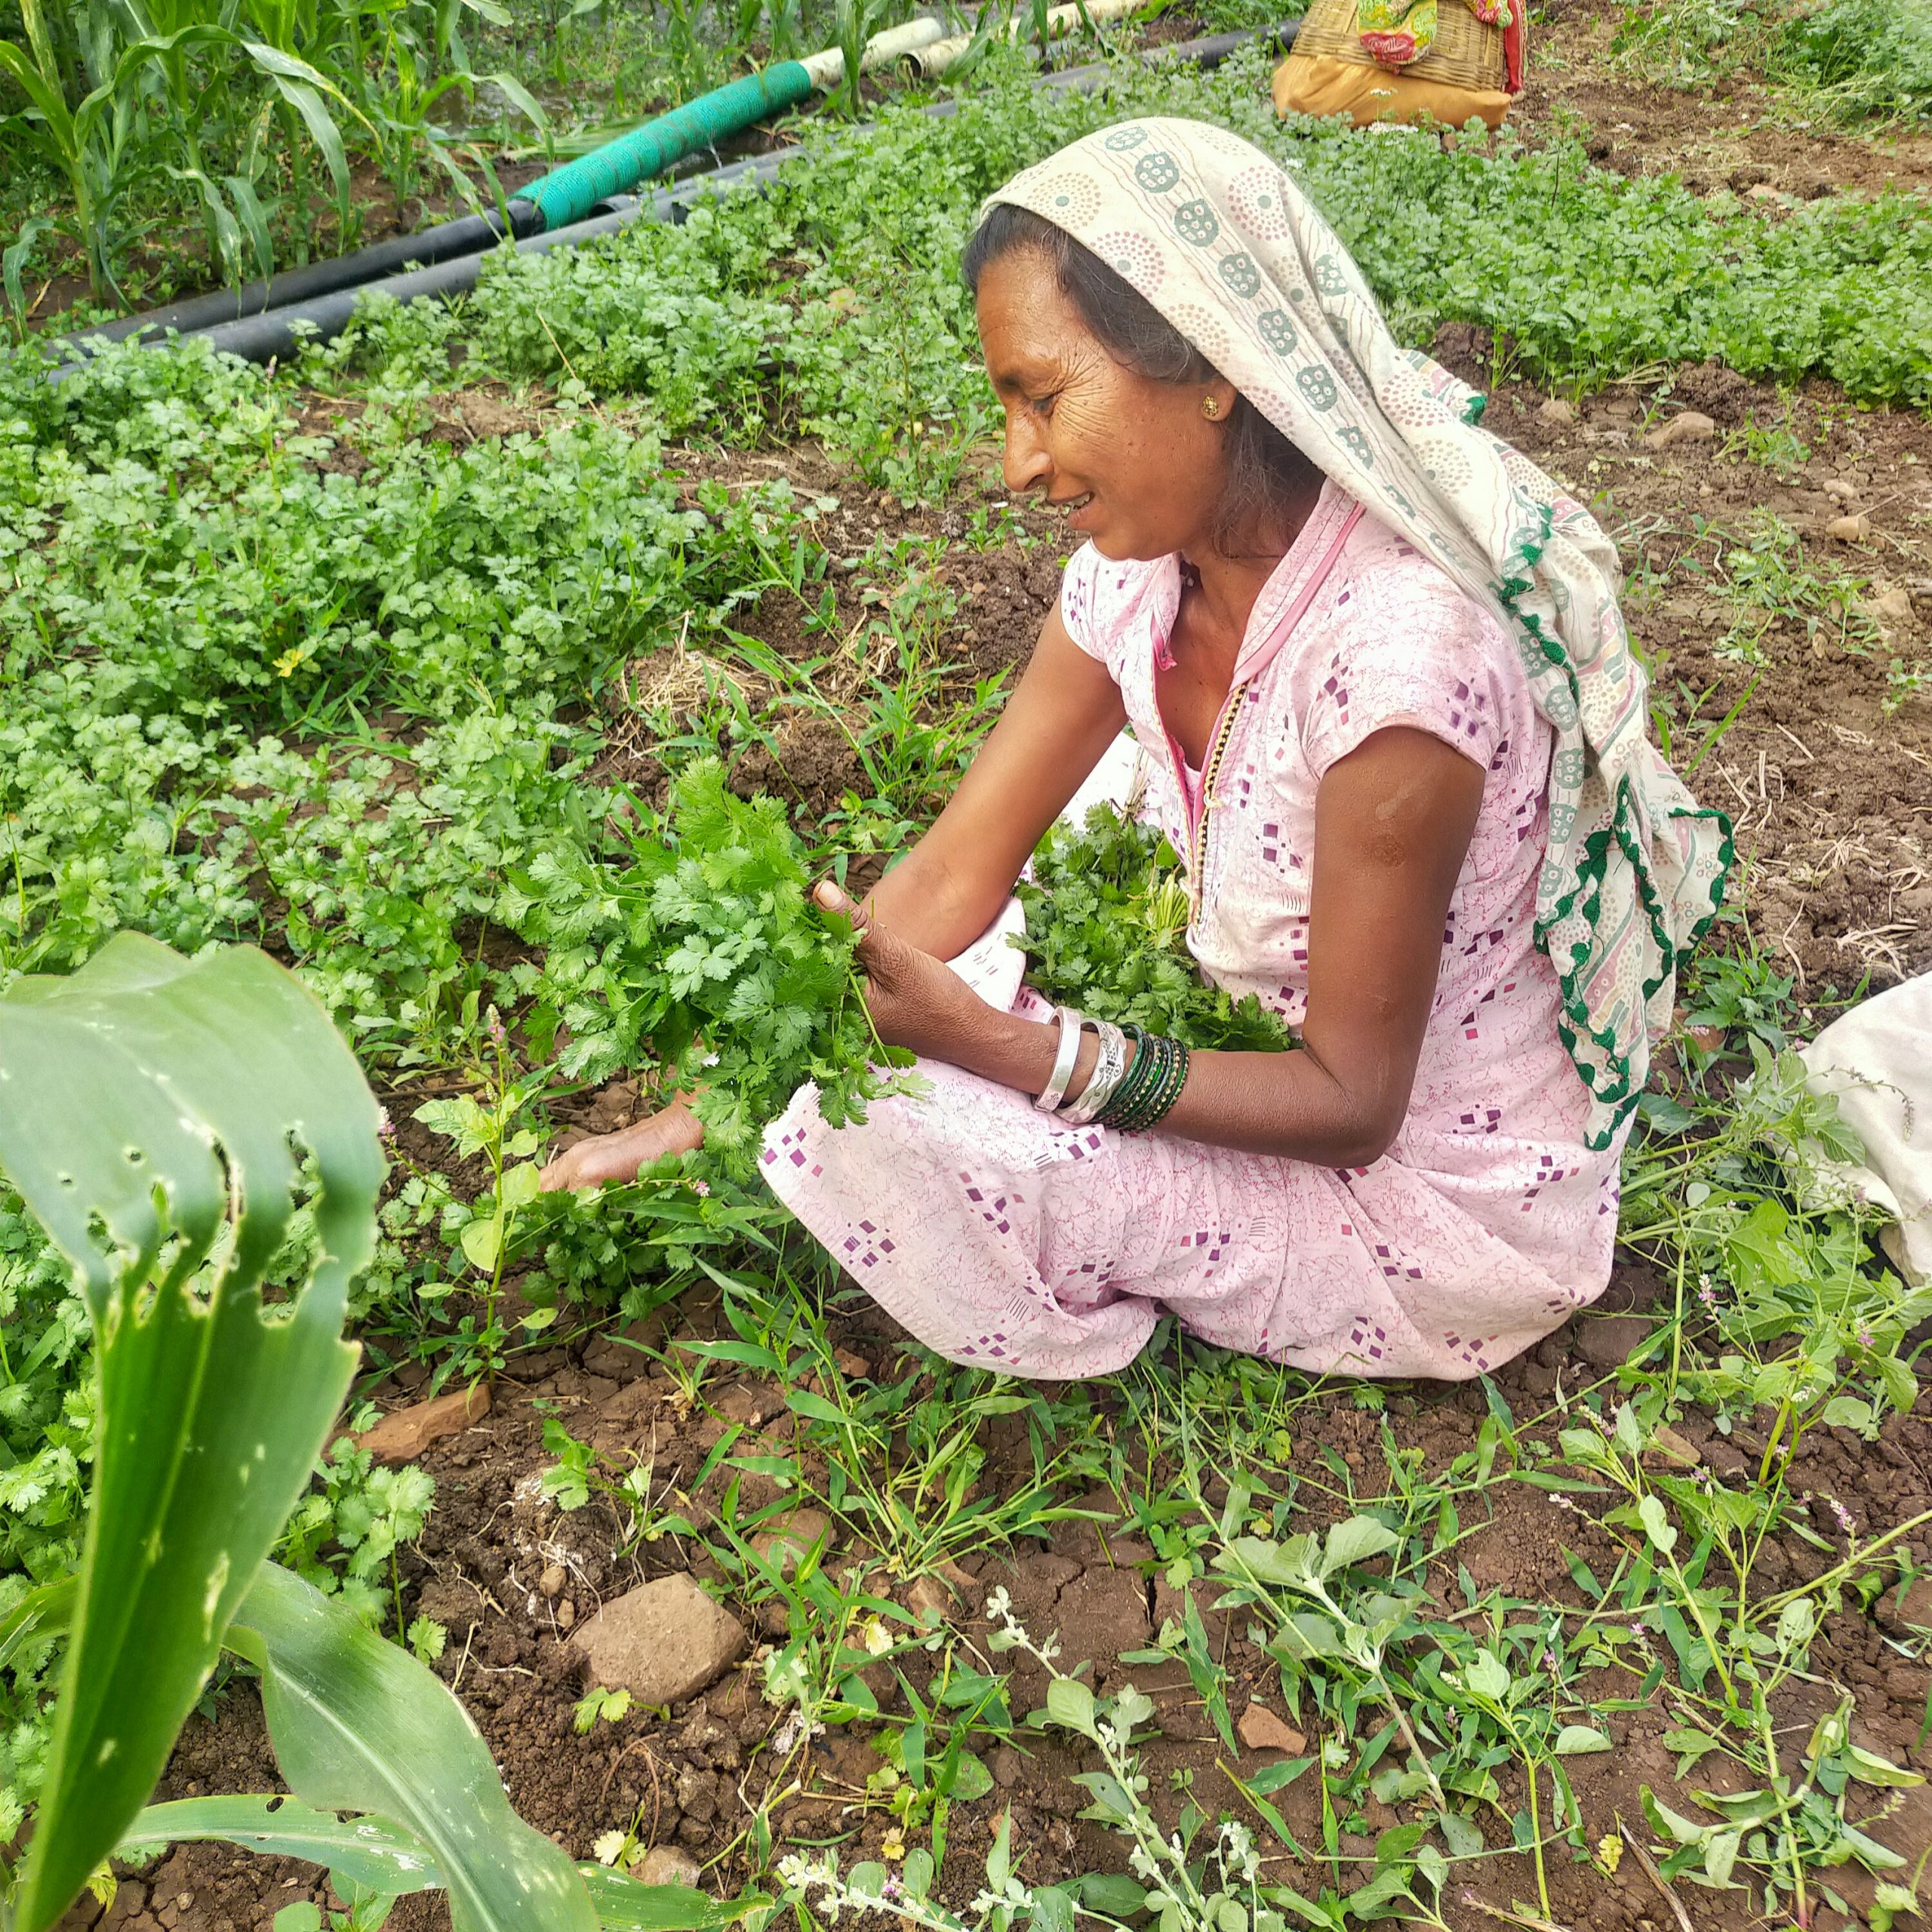 A lady farmer collecting coriander leaves